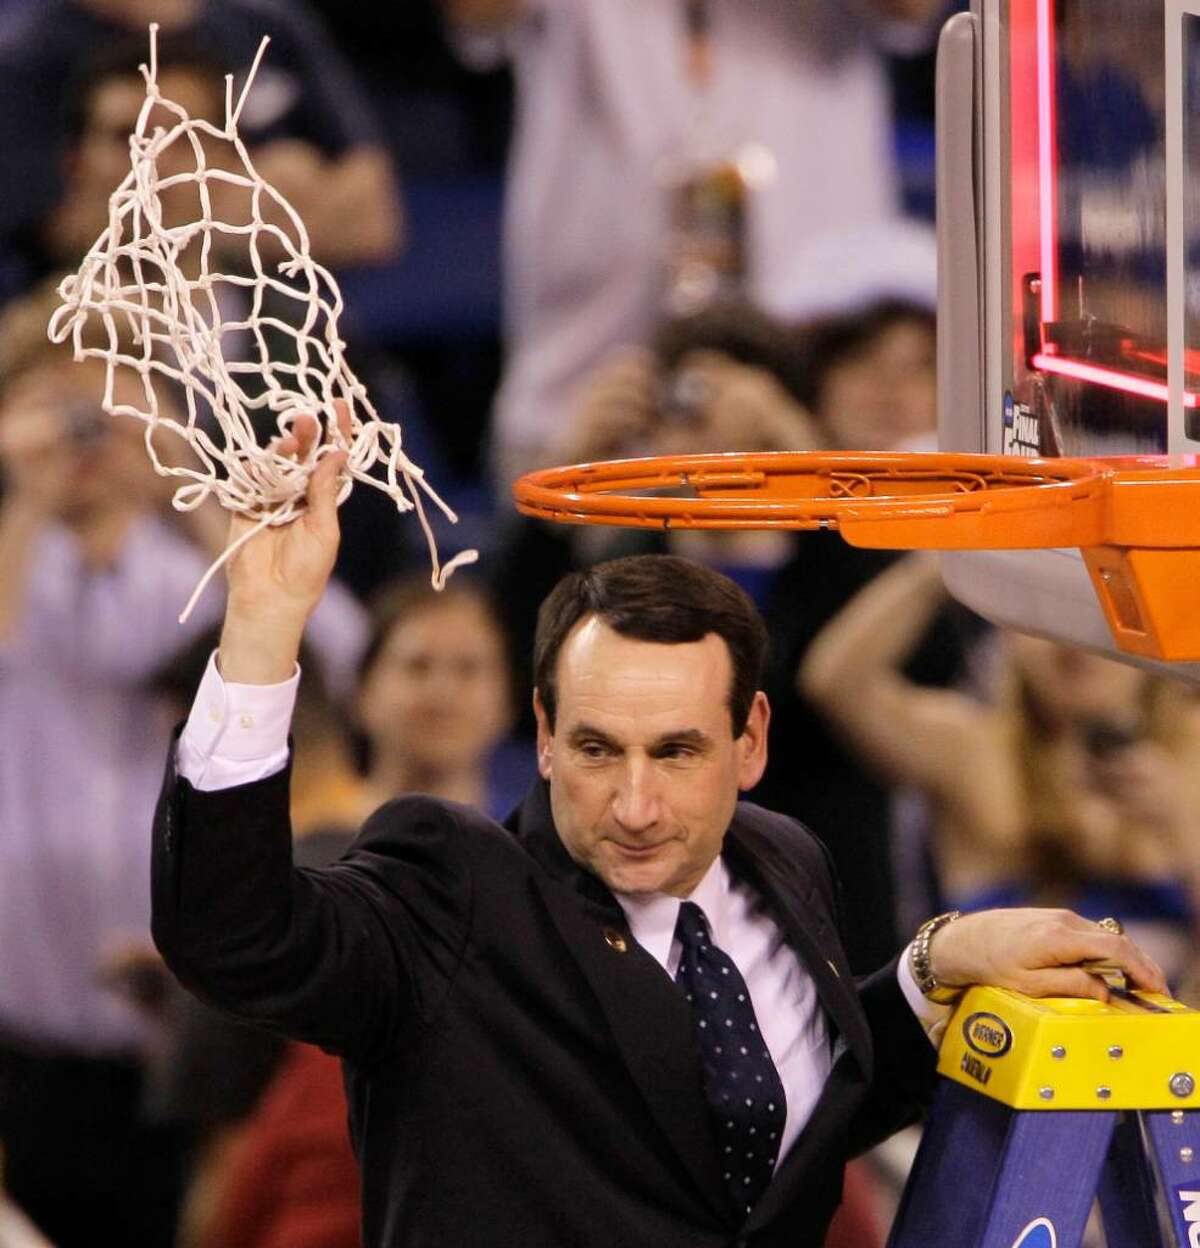 Duke head coach Mike Krzyzewski cuts down the net after Duke's 61-59 win over Butler in the men's NCAA Final Four college basketball championship game Monday, April 5, 2010, in Indianapolis.